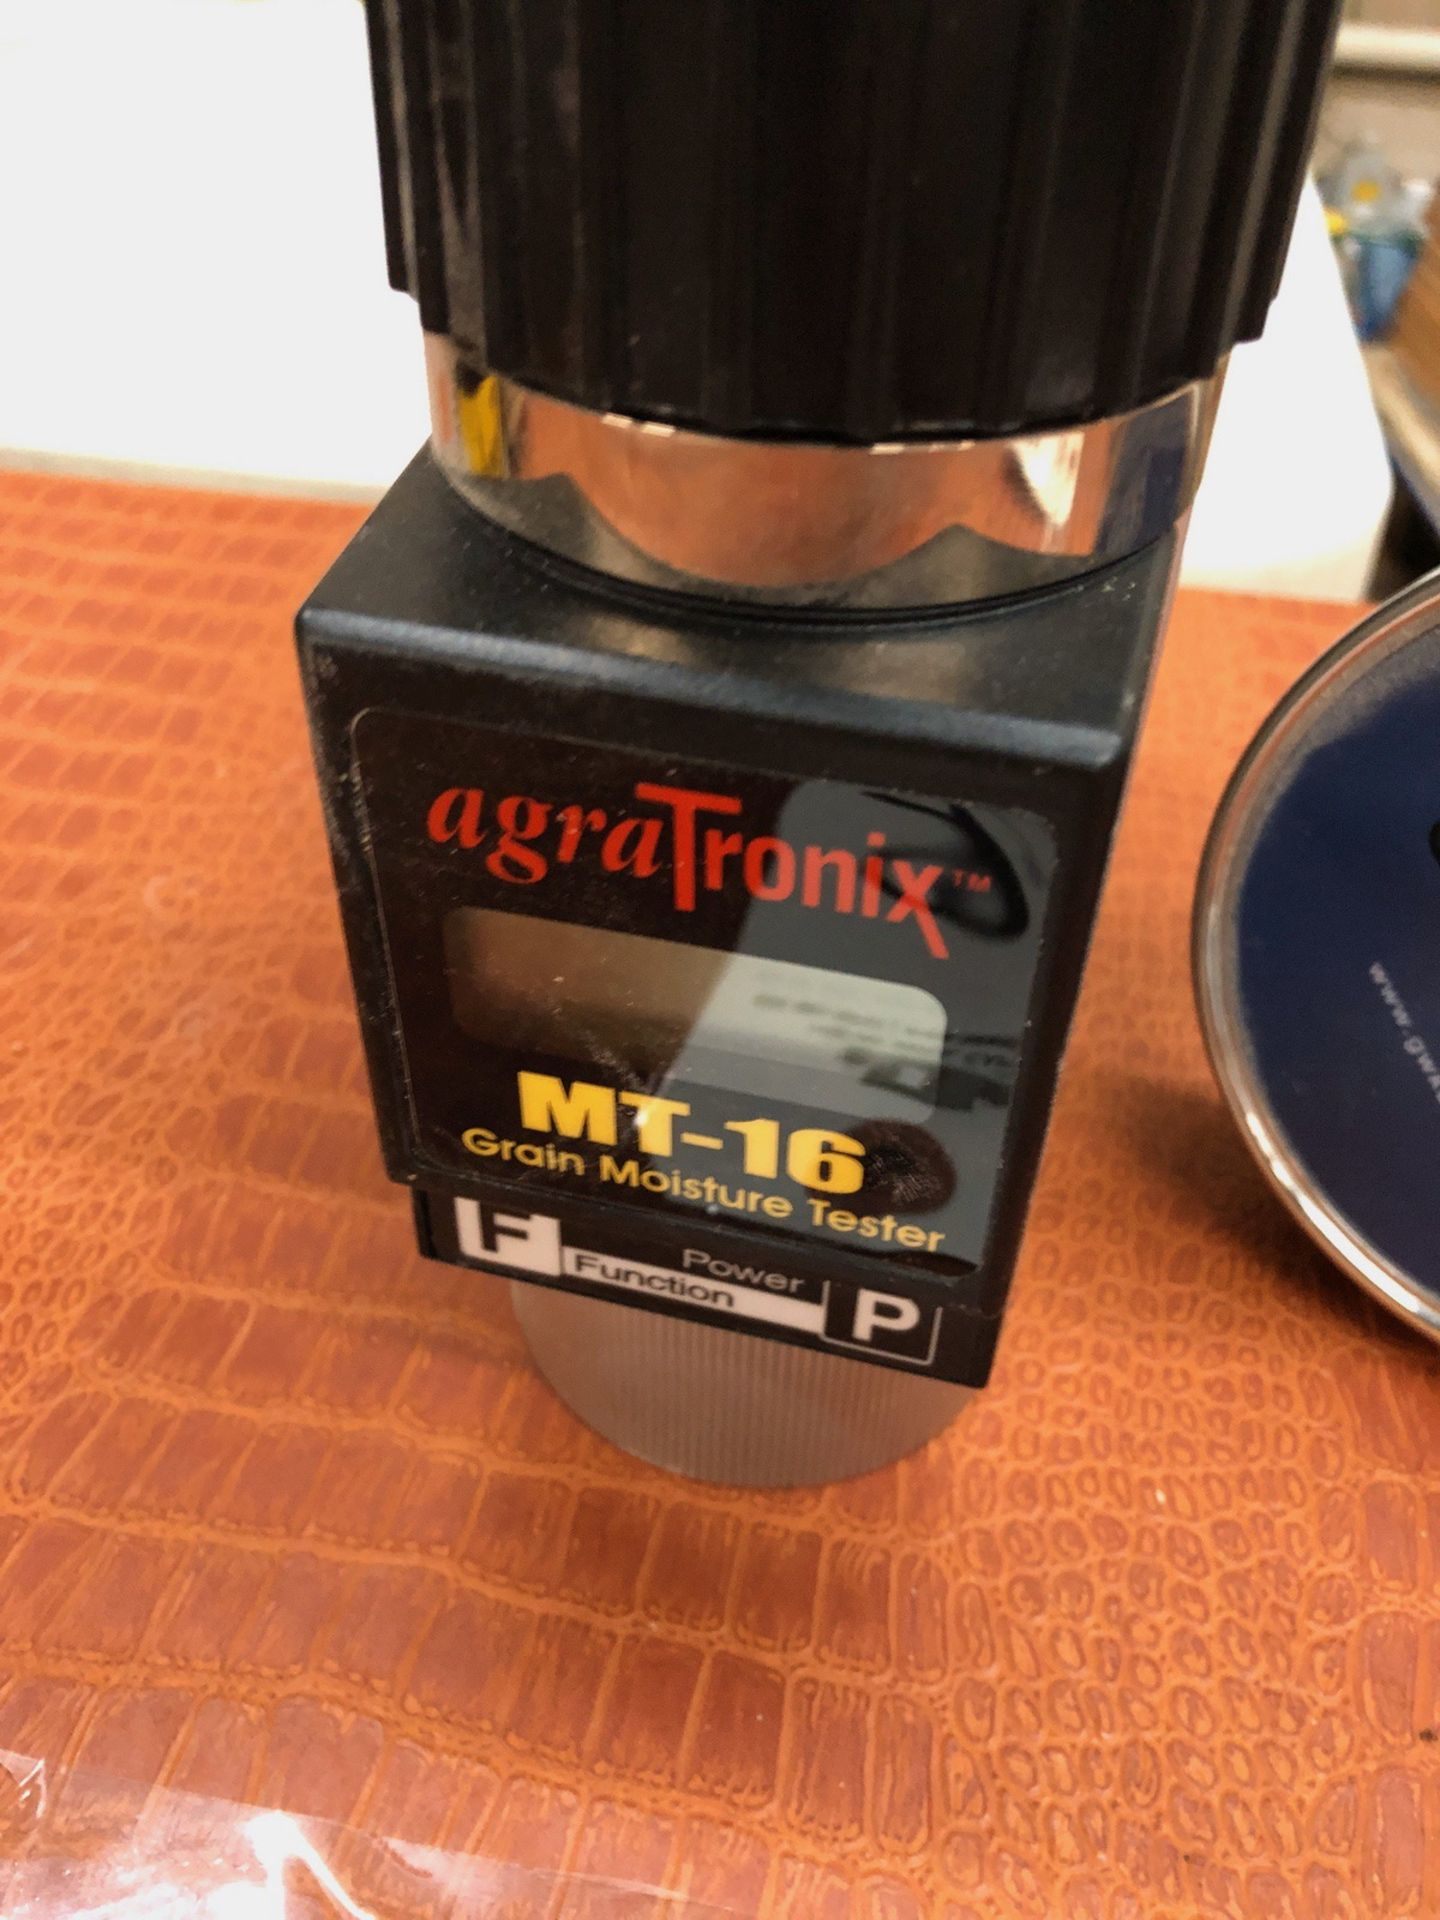 Lot 35 - AgraTronix MT-16 Grain Moisture Tester | Sub to Bulk | Rig Fee: $30 or HC